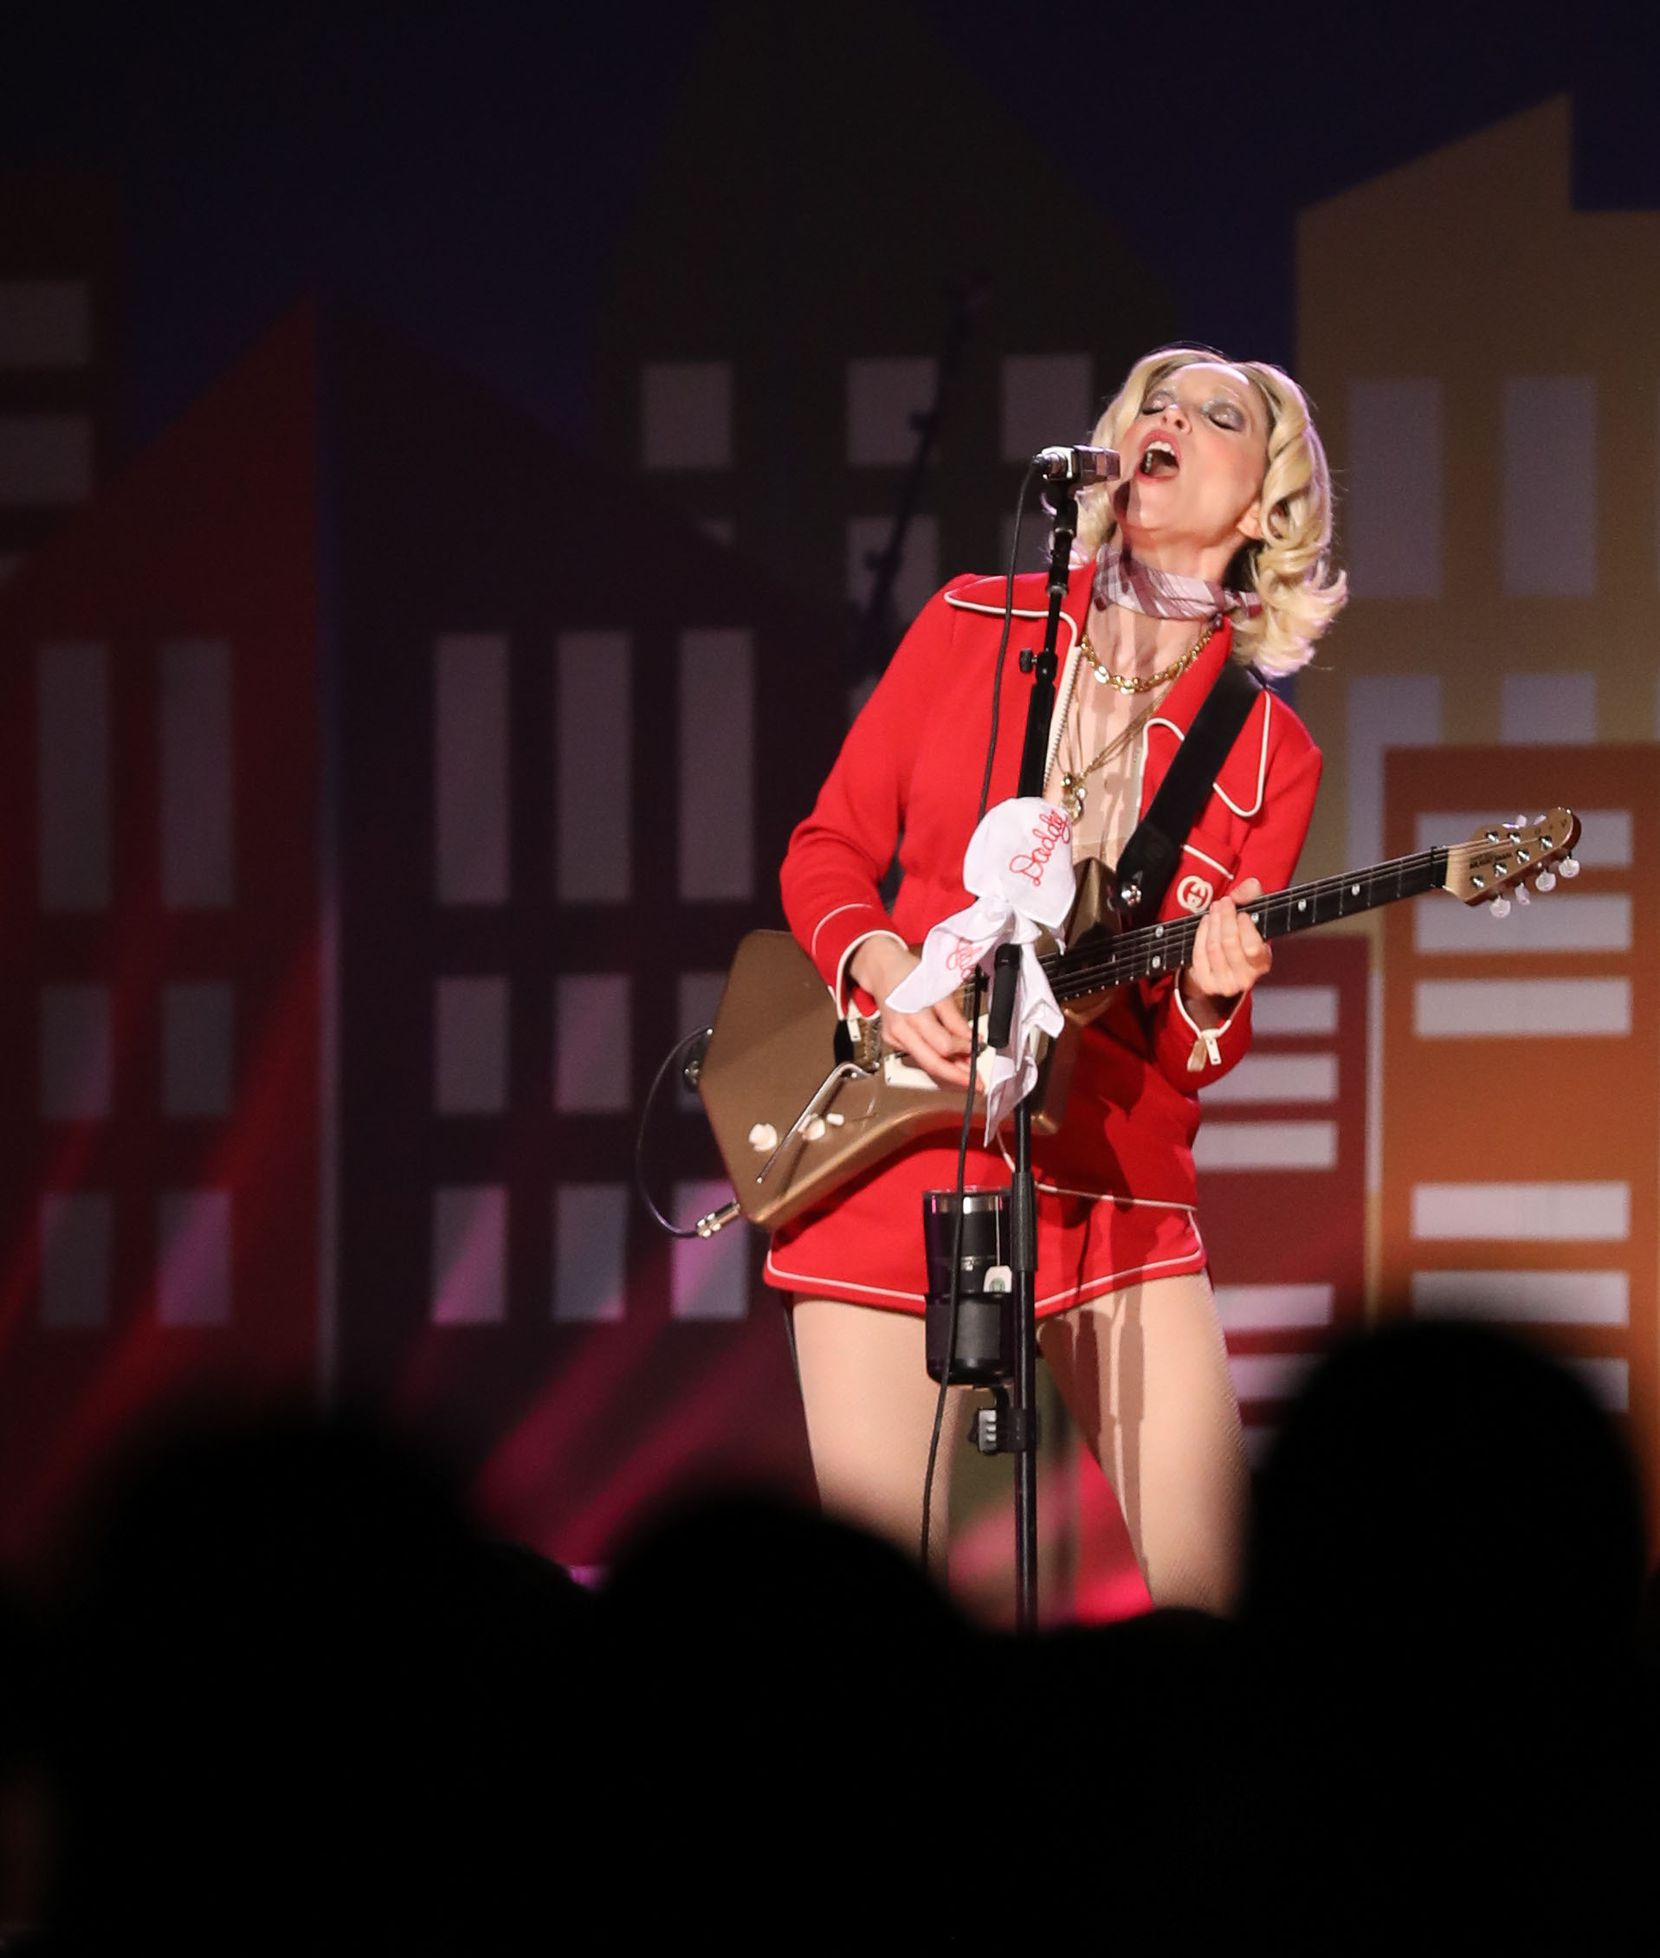 The Pavilion at Toyota Music Factory is one of almost a dozen area venues St. Vincent has played. Others include smalls clubs like Hailey's in Denton and fancy joints like the Winspear Opera House, where she teamed up with the Dallas Symphony Orchestra.